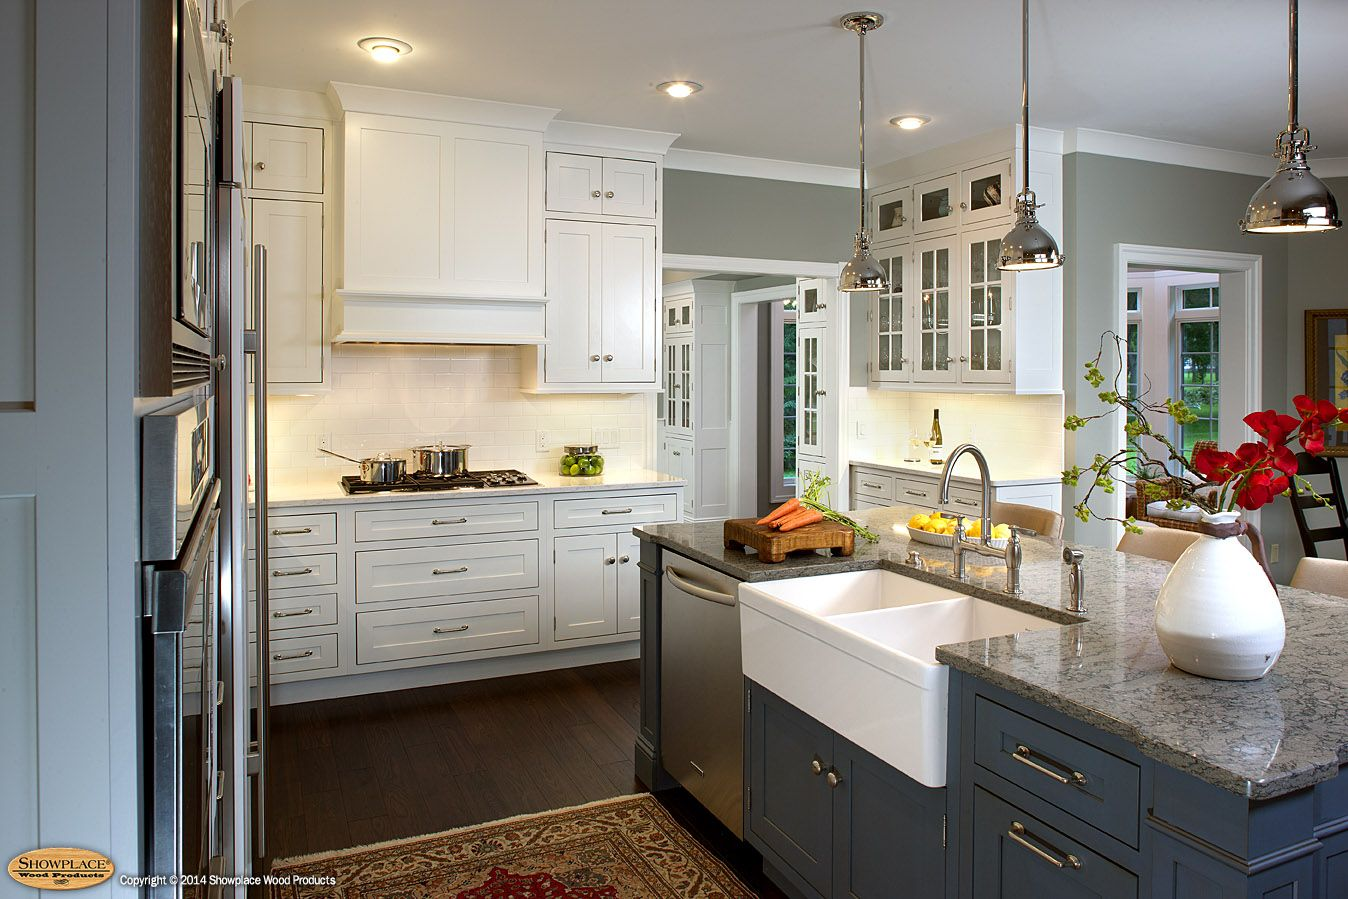 Showplace Kitchen Cabinets Pin By Showplace Cabinetry On Re Imagined Creativity